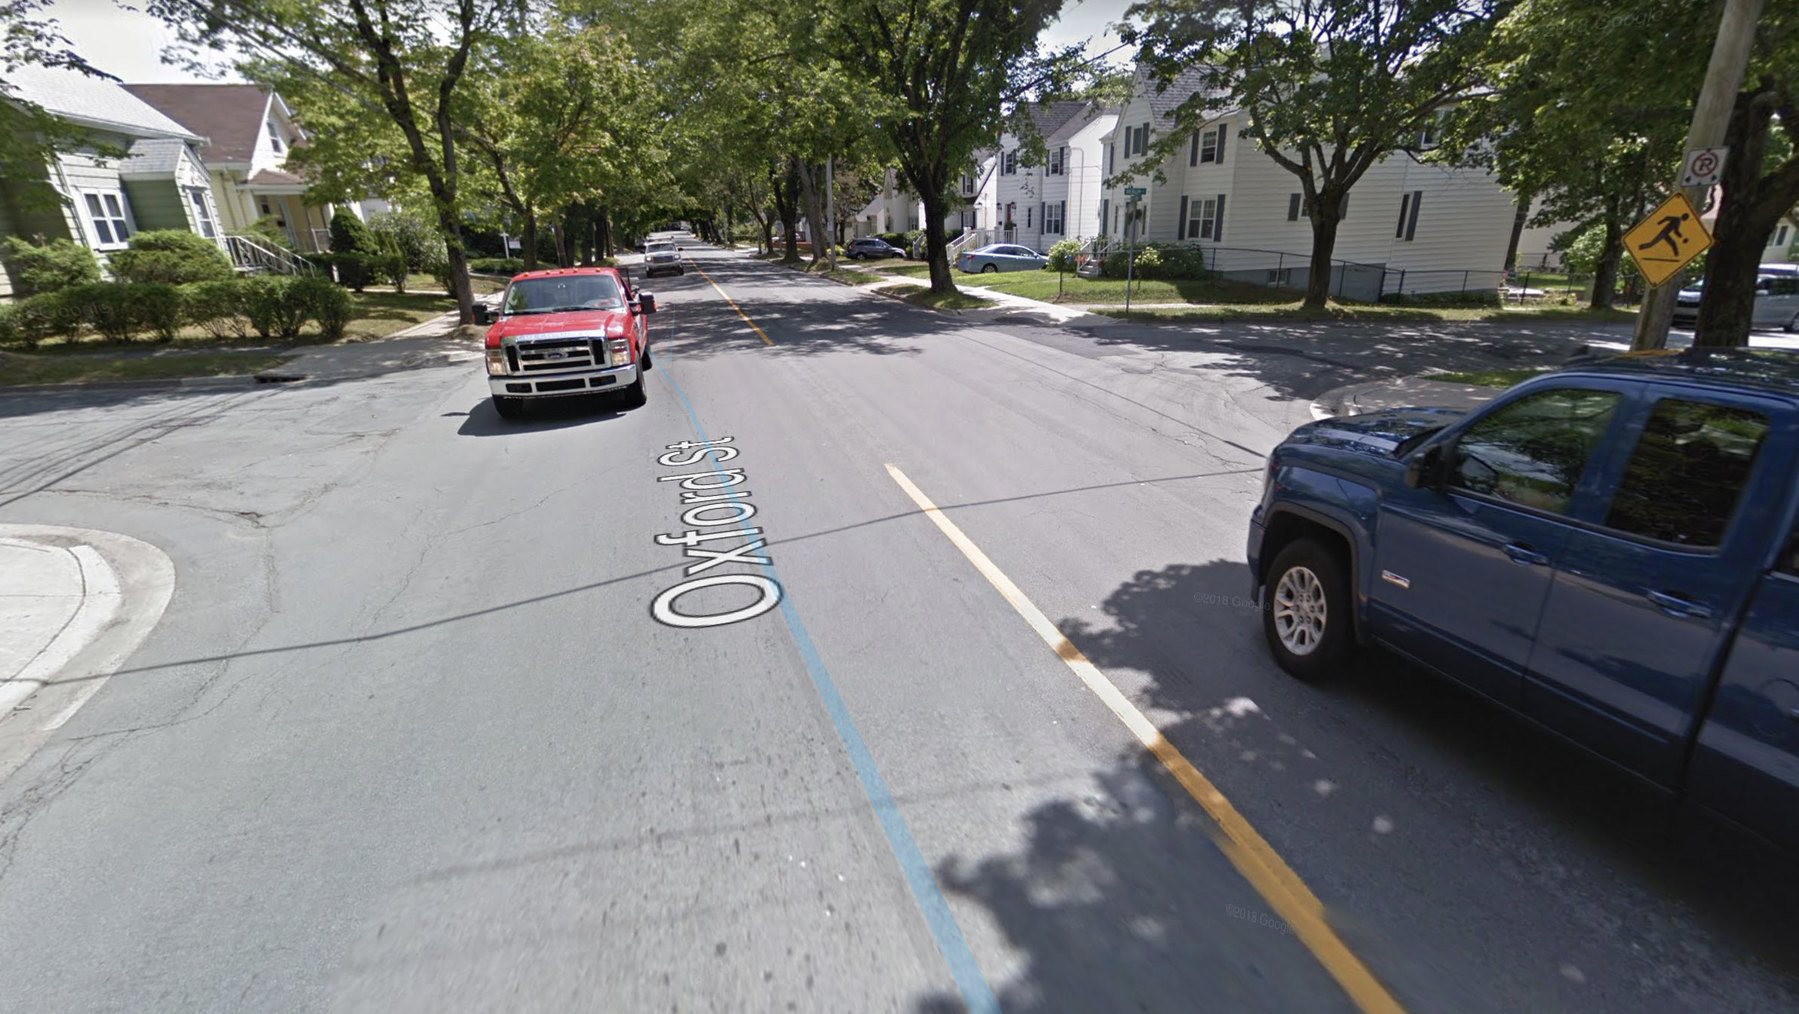 Google Streetview of Berlin & Oxford showing two giant pickup trucks driving down Oxford Street.